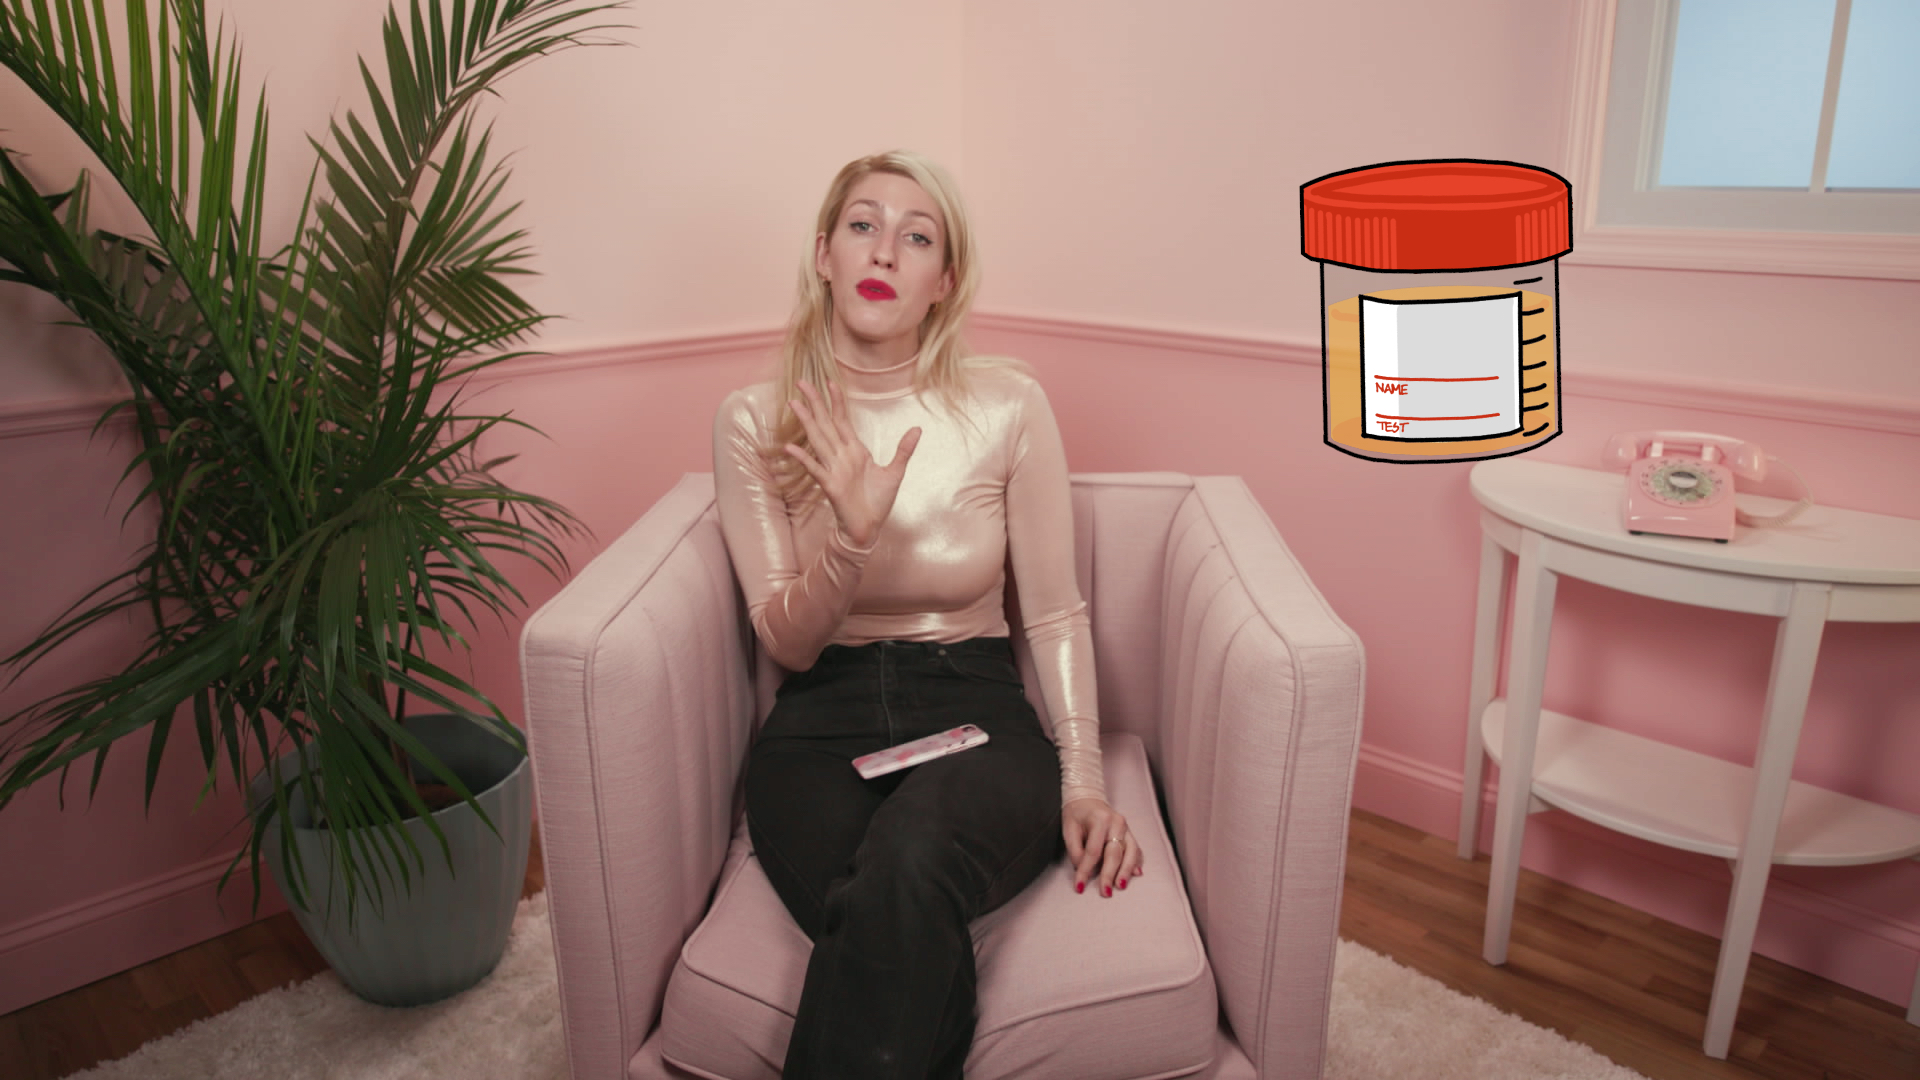 What Pee Actually Tastes Like, According to the Internet - VICE